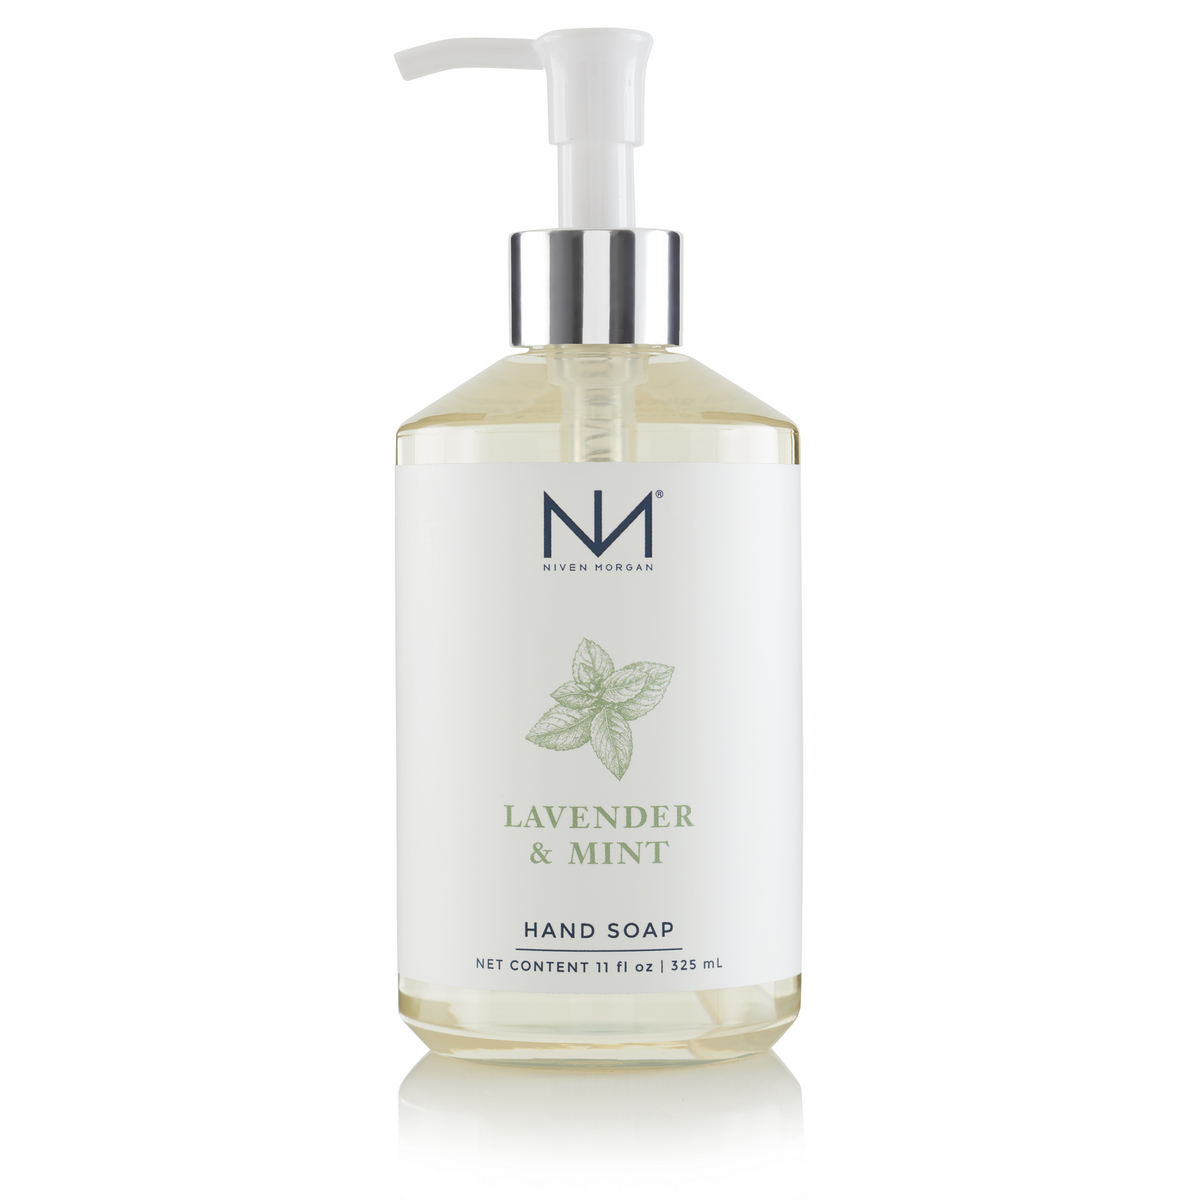 Niven Morgan Lavender Mint Hand Soap-Niven Morgan-Oak Manor Fragrances